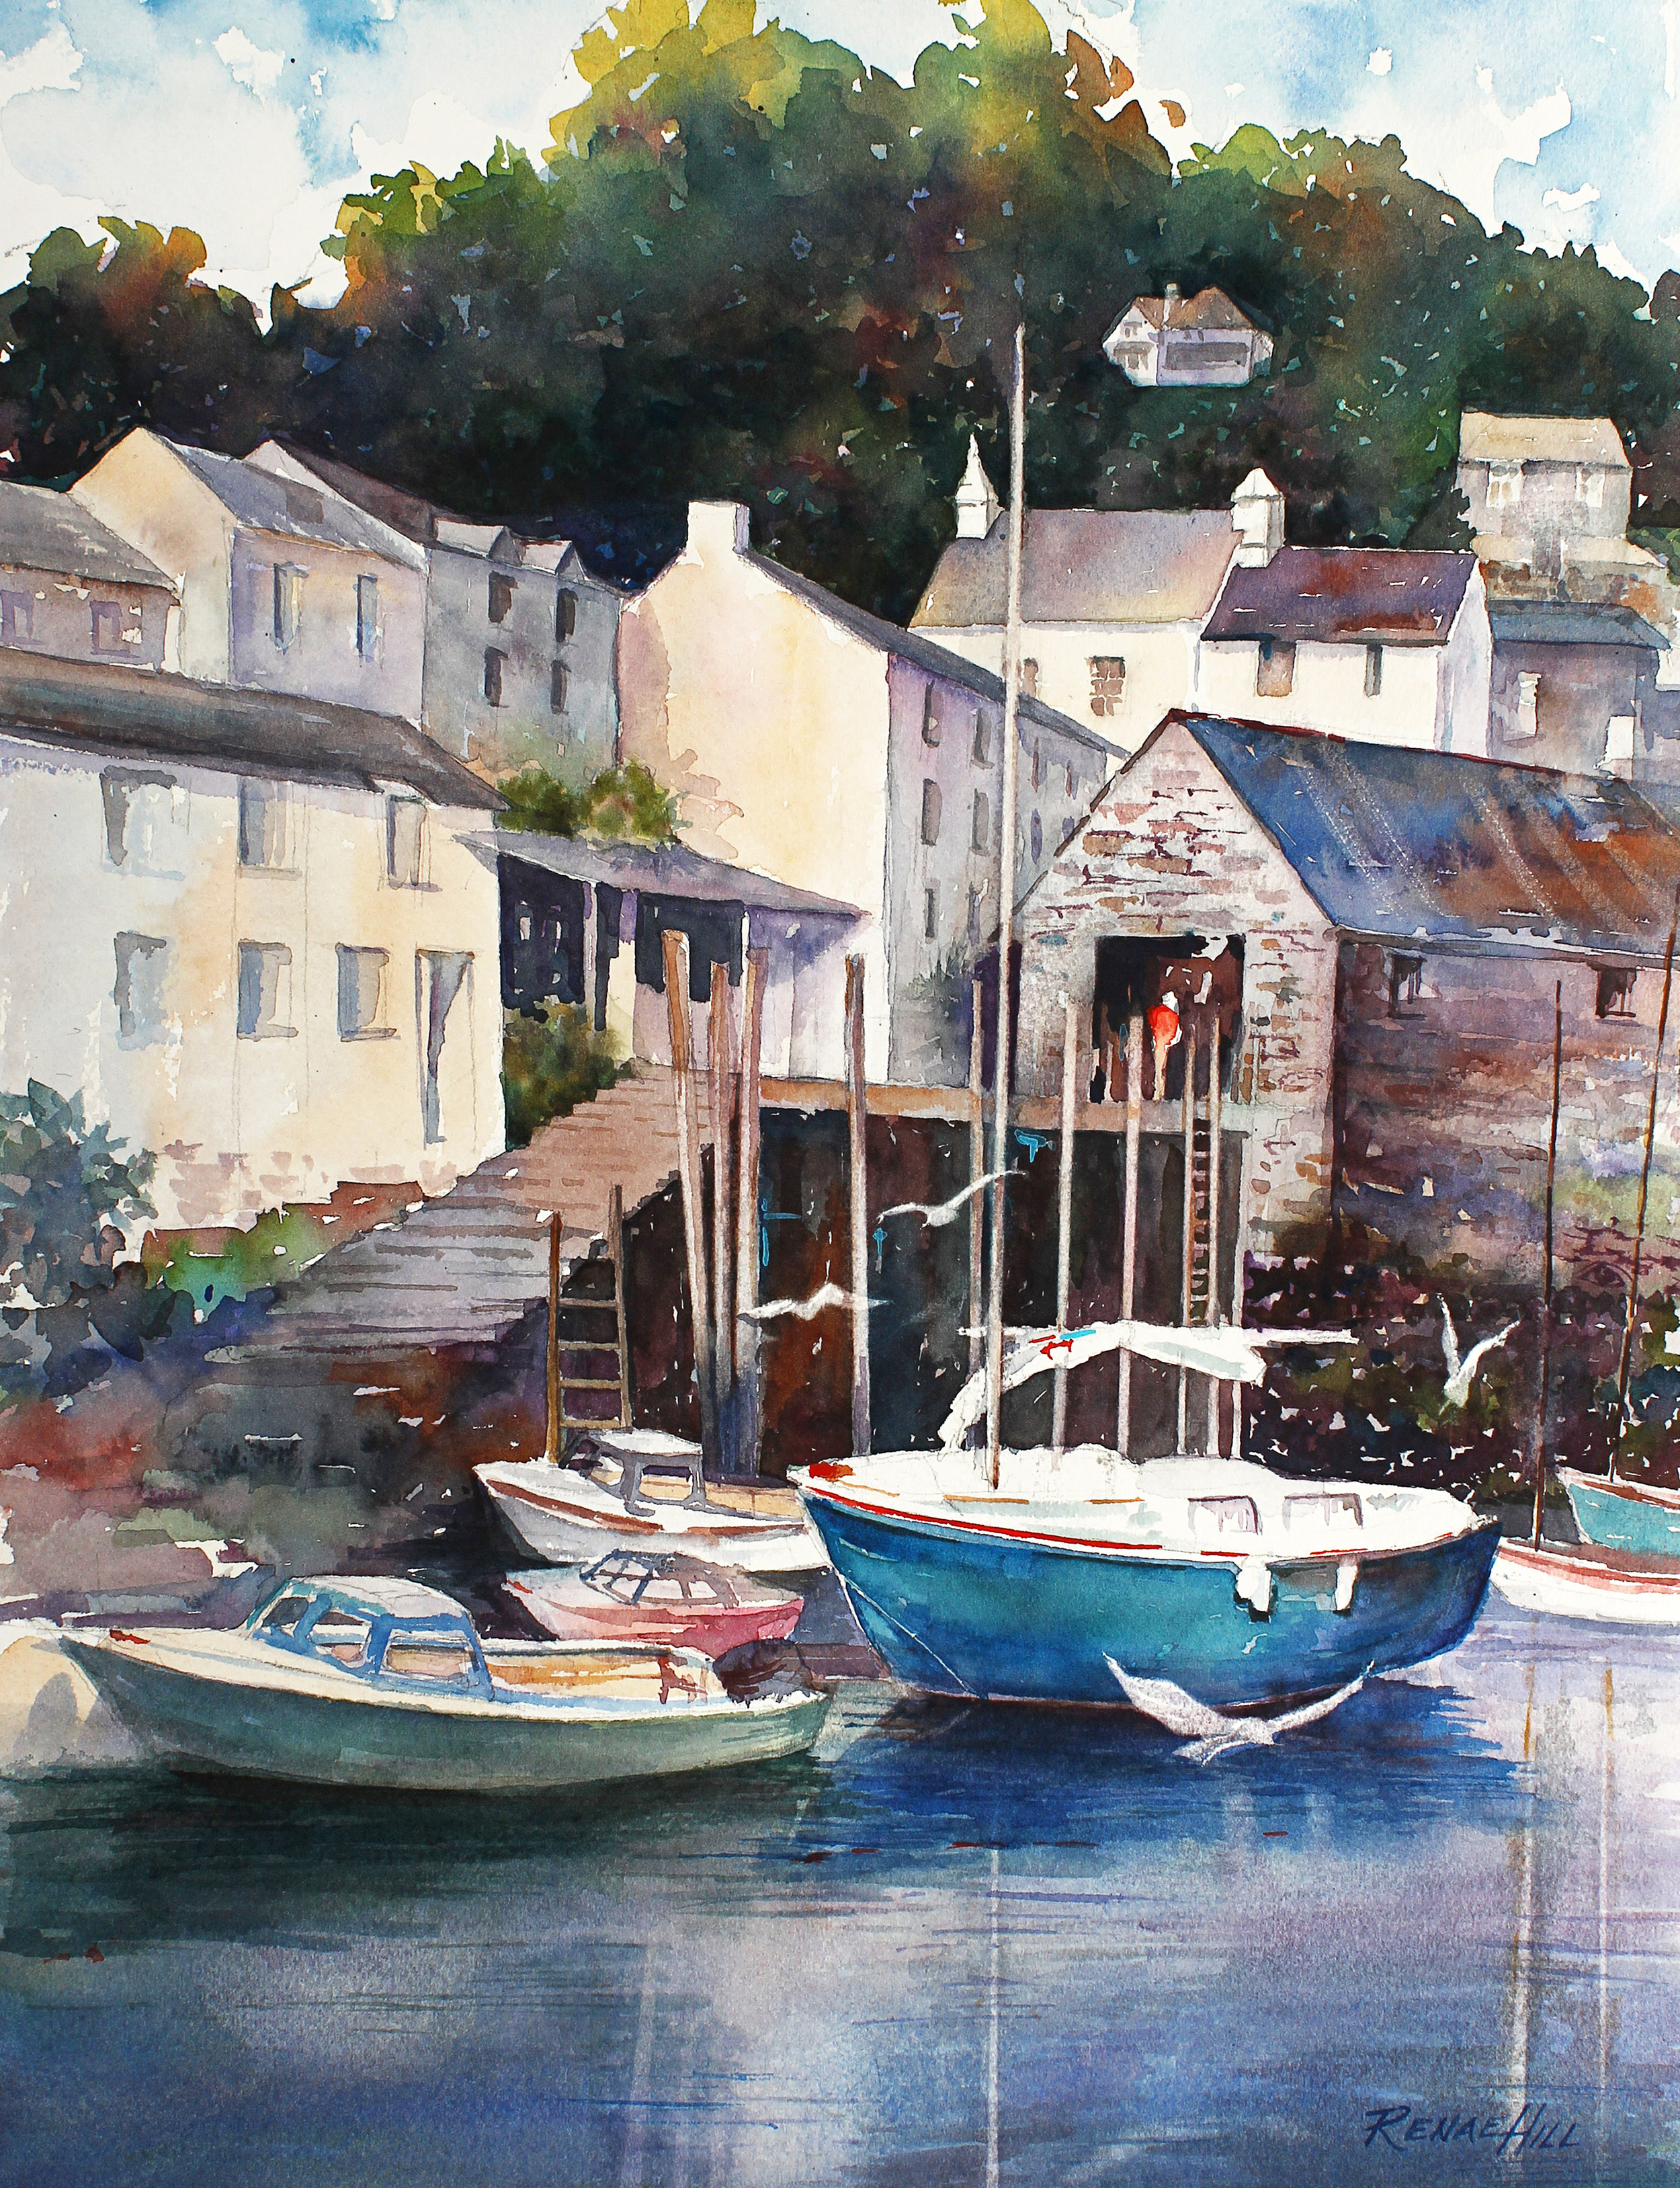 Devon  12x16 Watercolor                                              The little fishing village in Devon. England